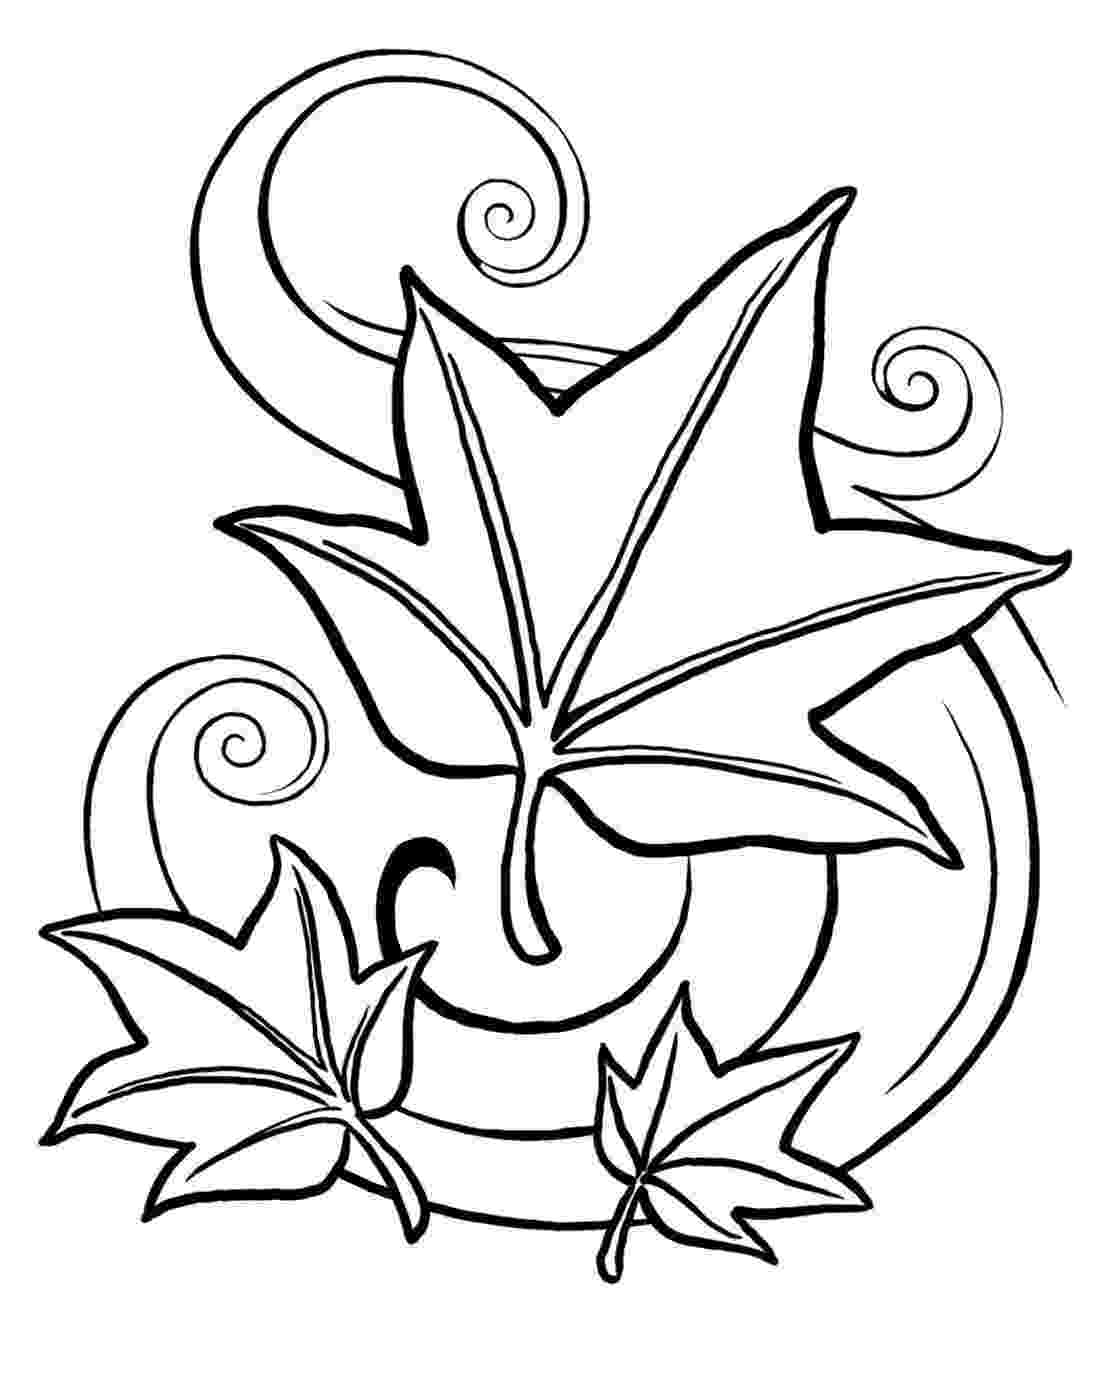 autumn leaves coloring pages fall leaves coloring page crayolacom coloring pages autumn leaves